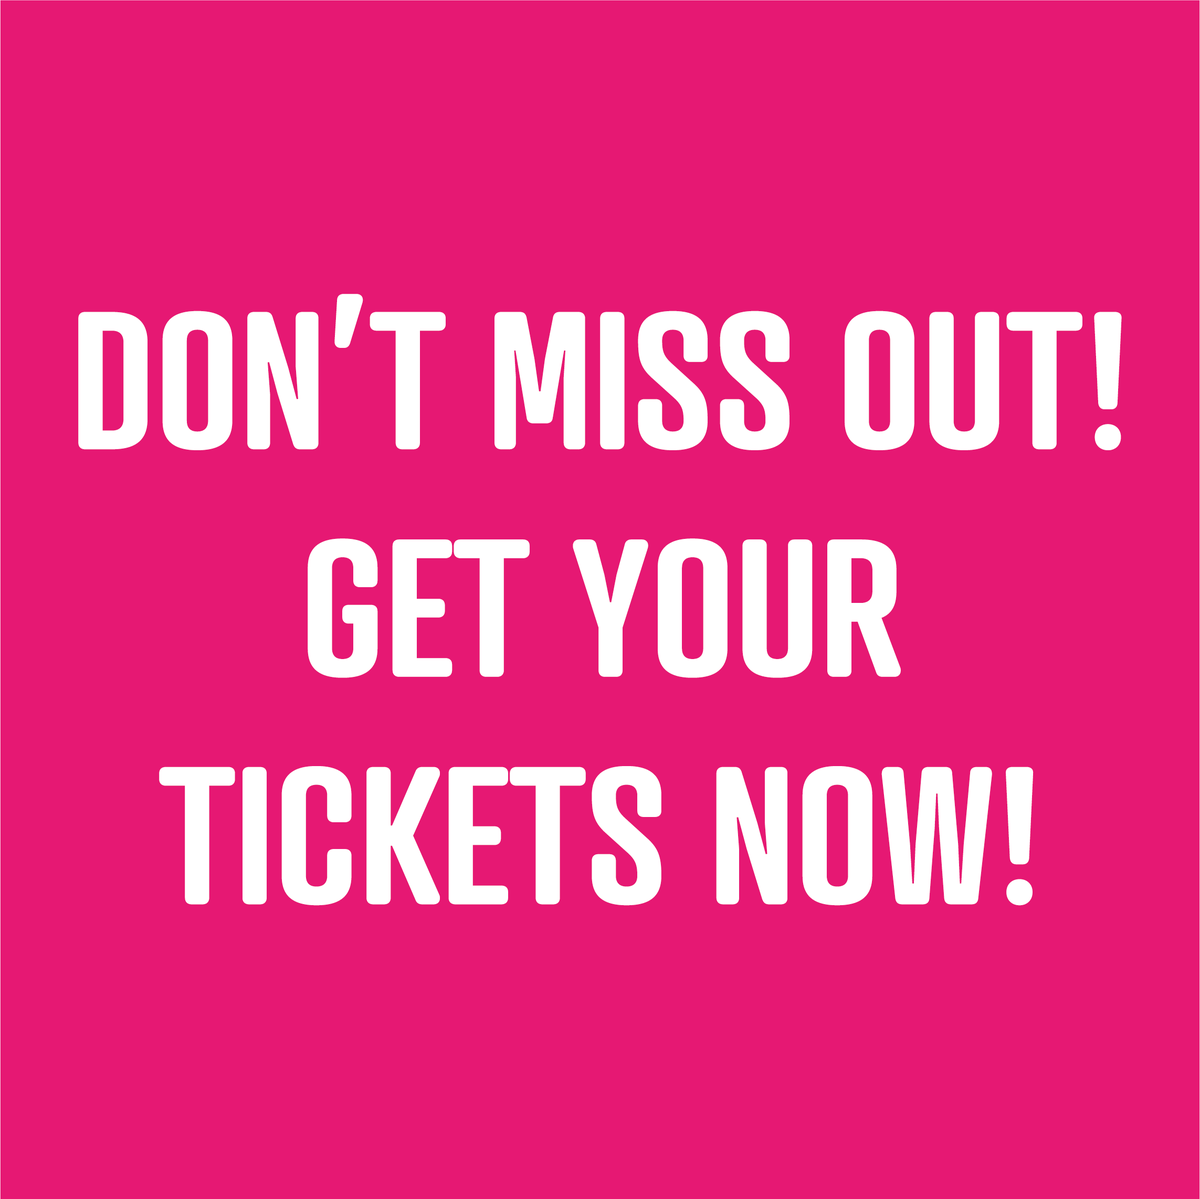 Guess what?! Only ONE session left to announce...and we might have a bit of a surprise for you about our final afternoon session... Excited yet? Check back next week for our final updates! Grab your tickets here- dont miss out: buff.ly/2YTUmBQ #happyhighperformance